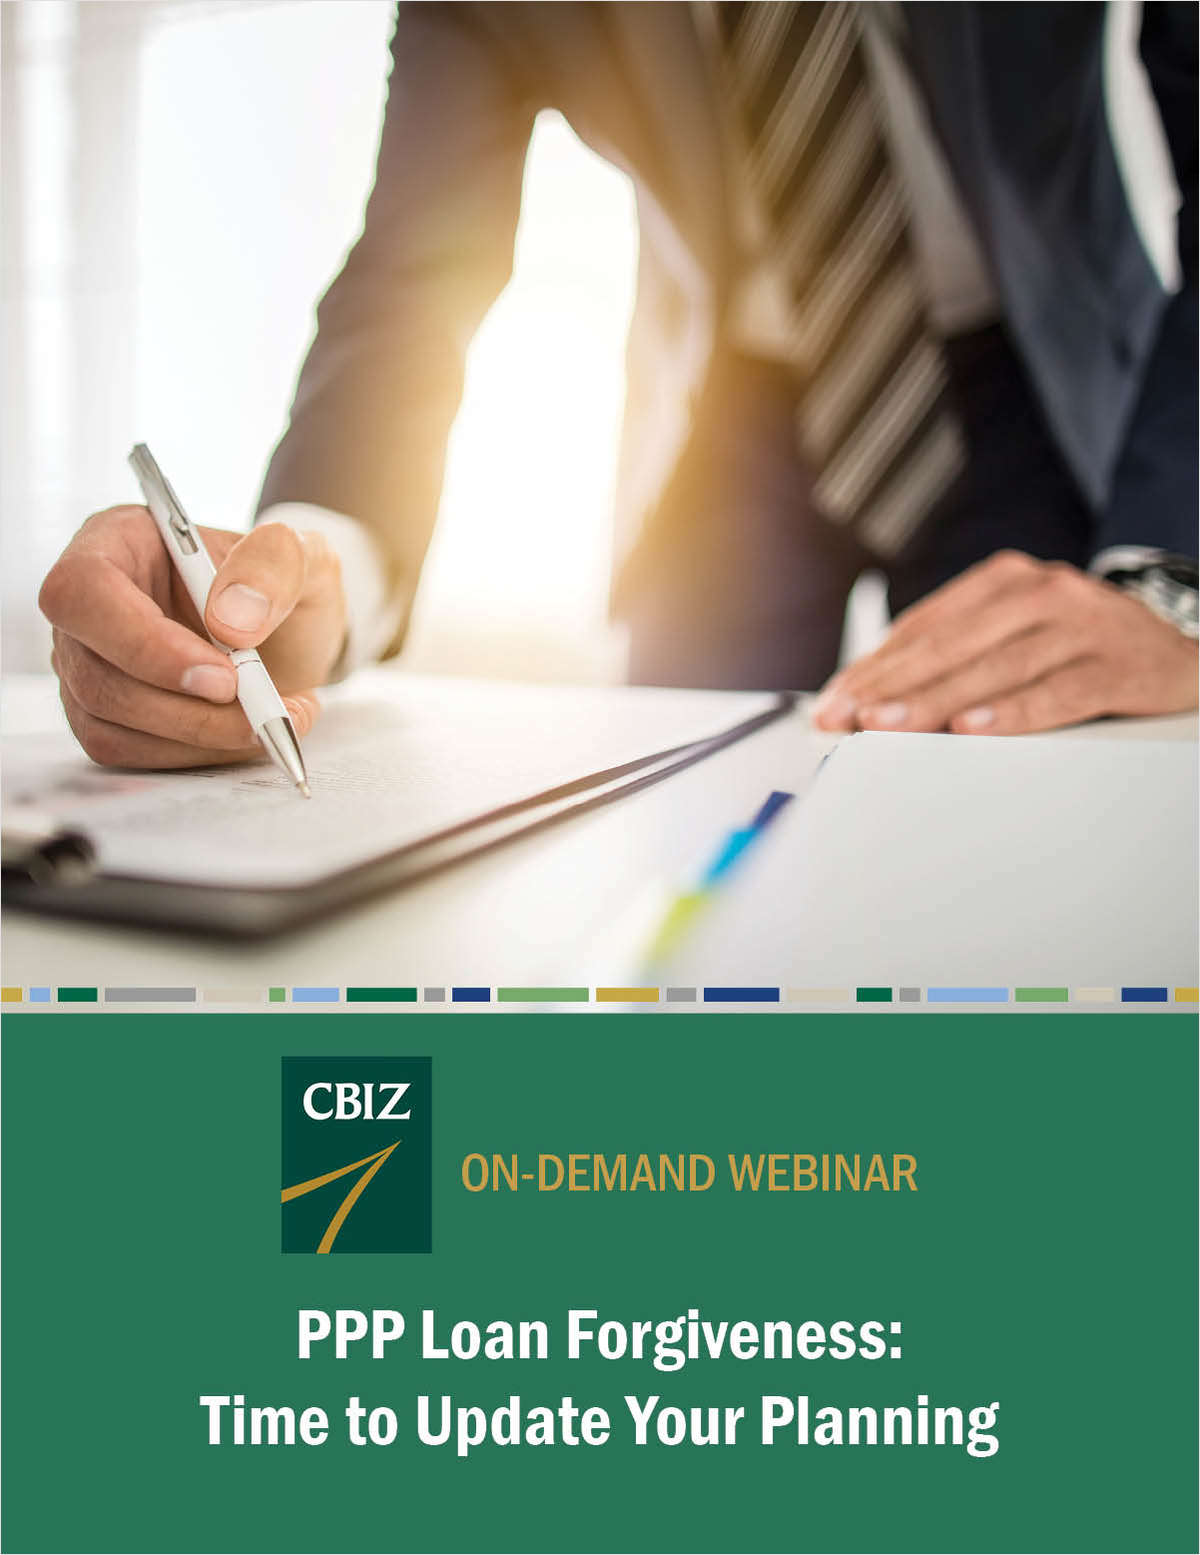 PPP Loan Forgiveness: Time to Update Your Planning